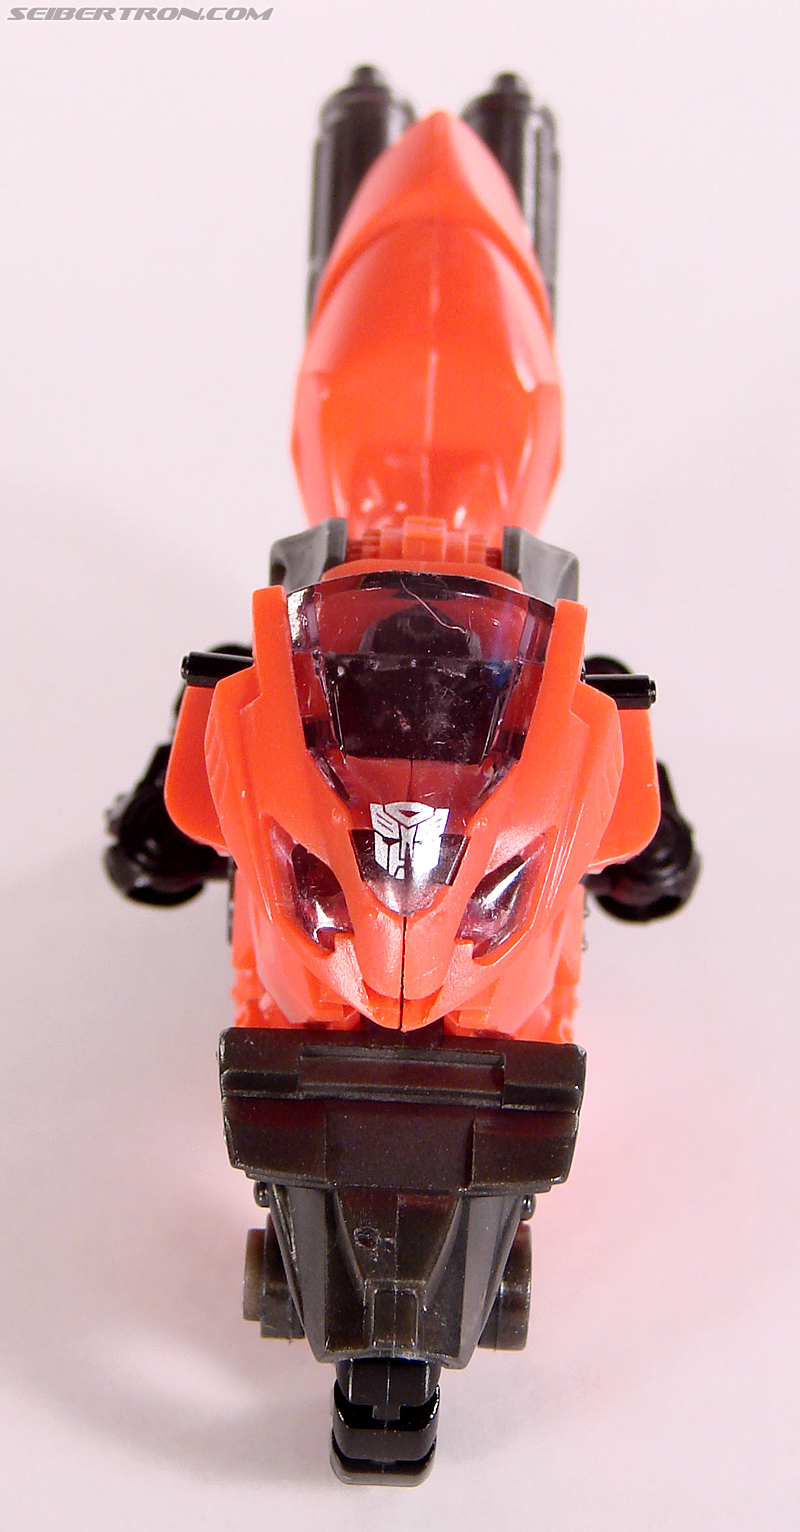 Transformers Revenge of the Fallen Arcee (Image #22 of 86)